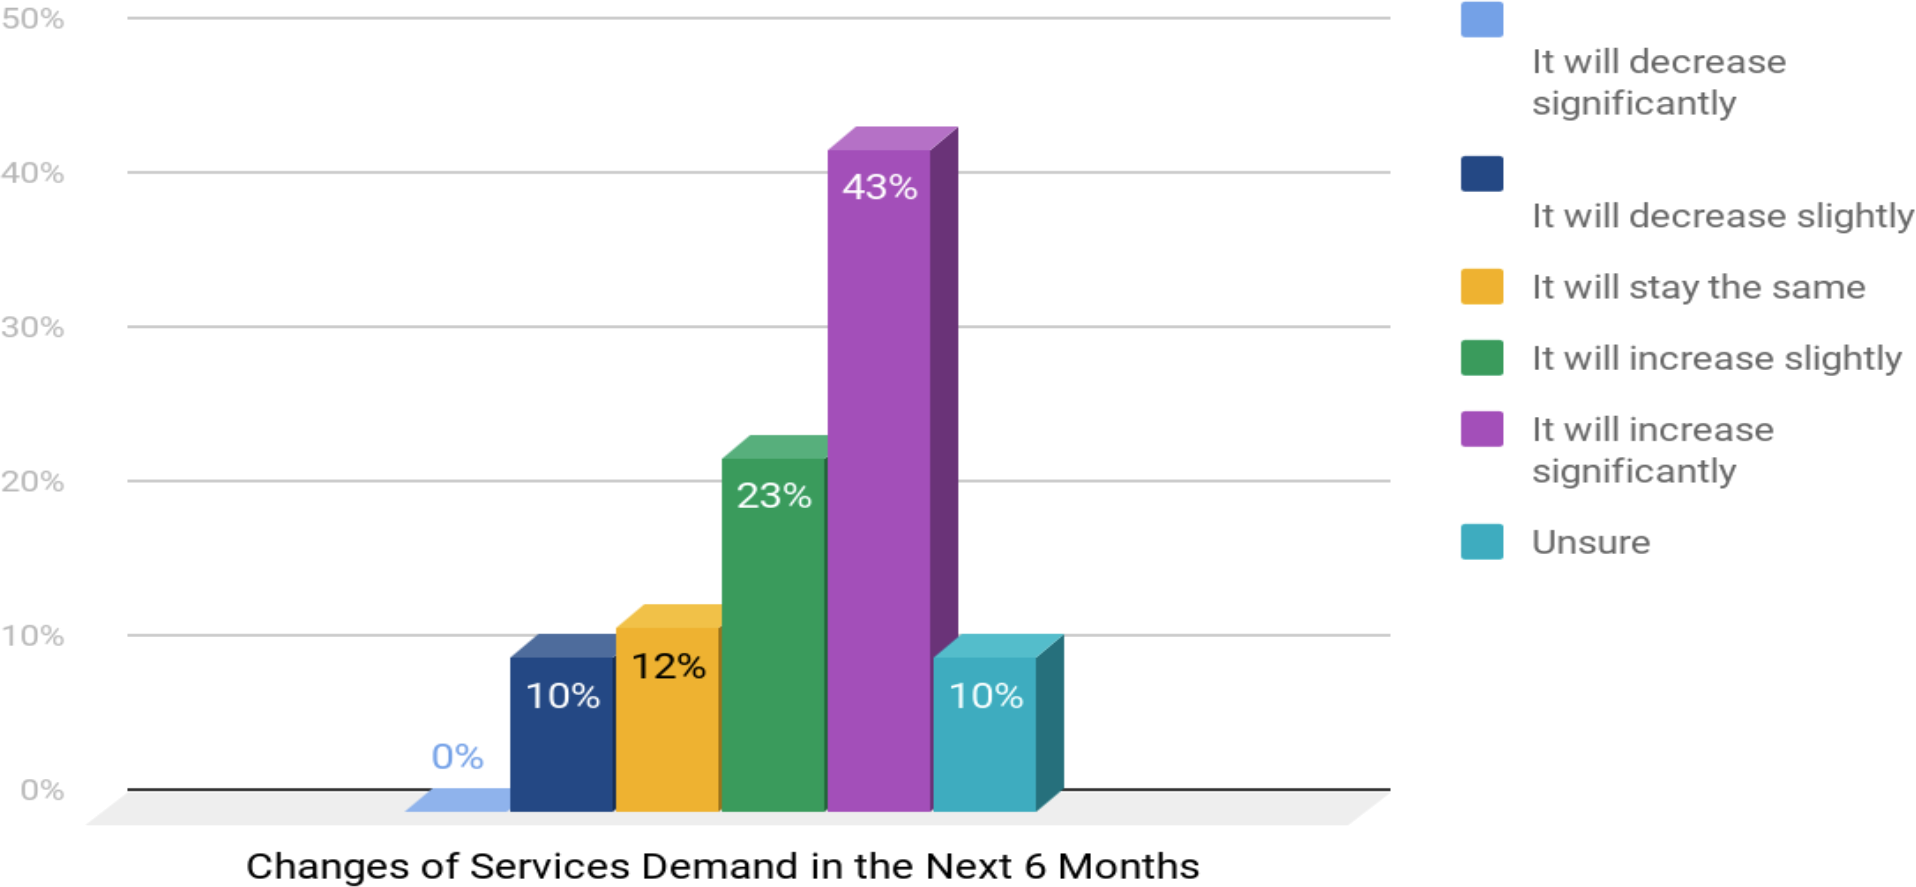 How do you expect the demand for your services will change over the next 6 months? (diagram)